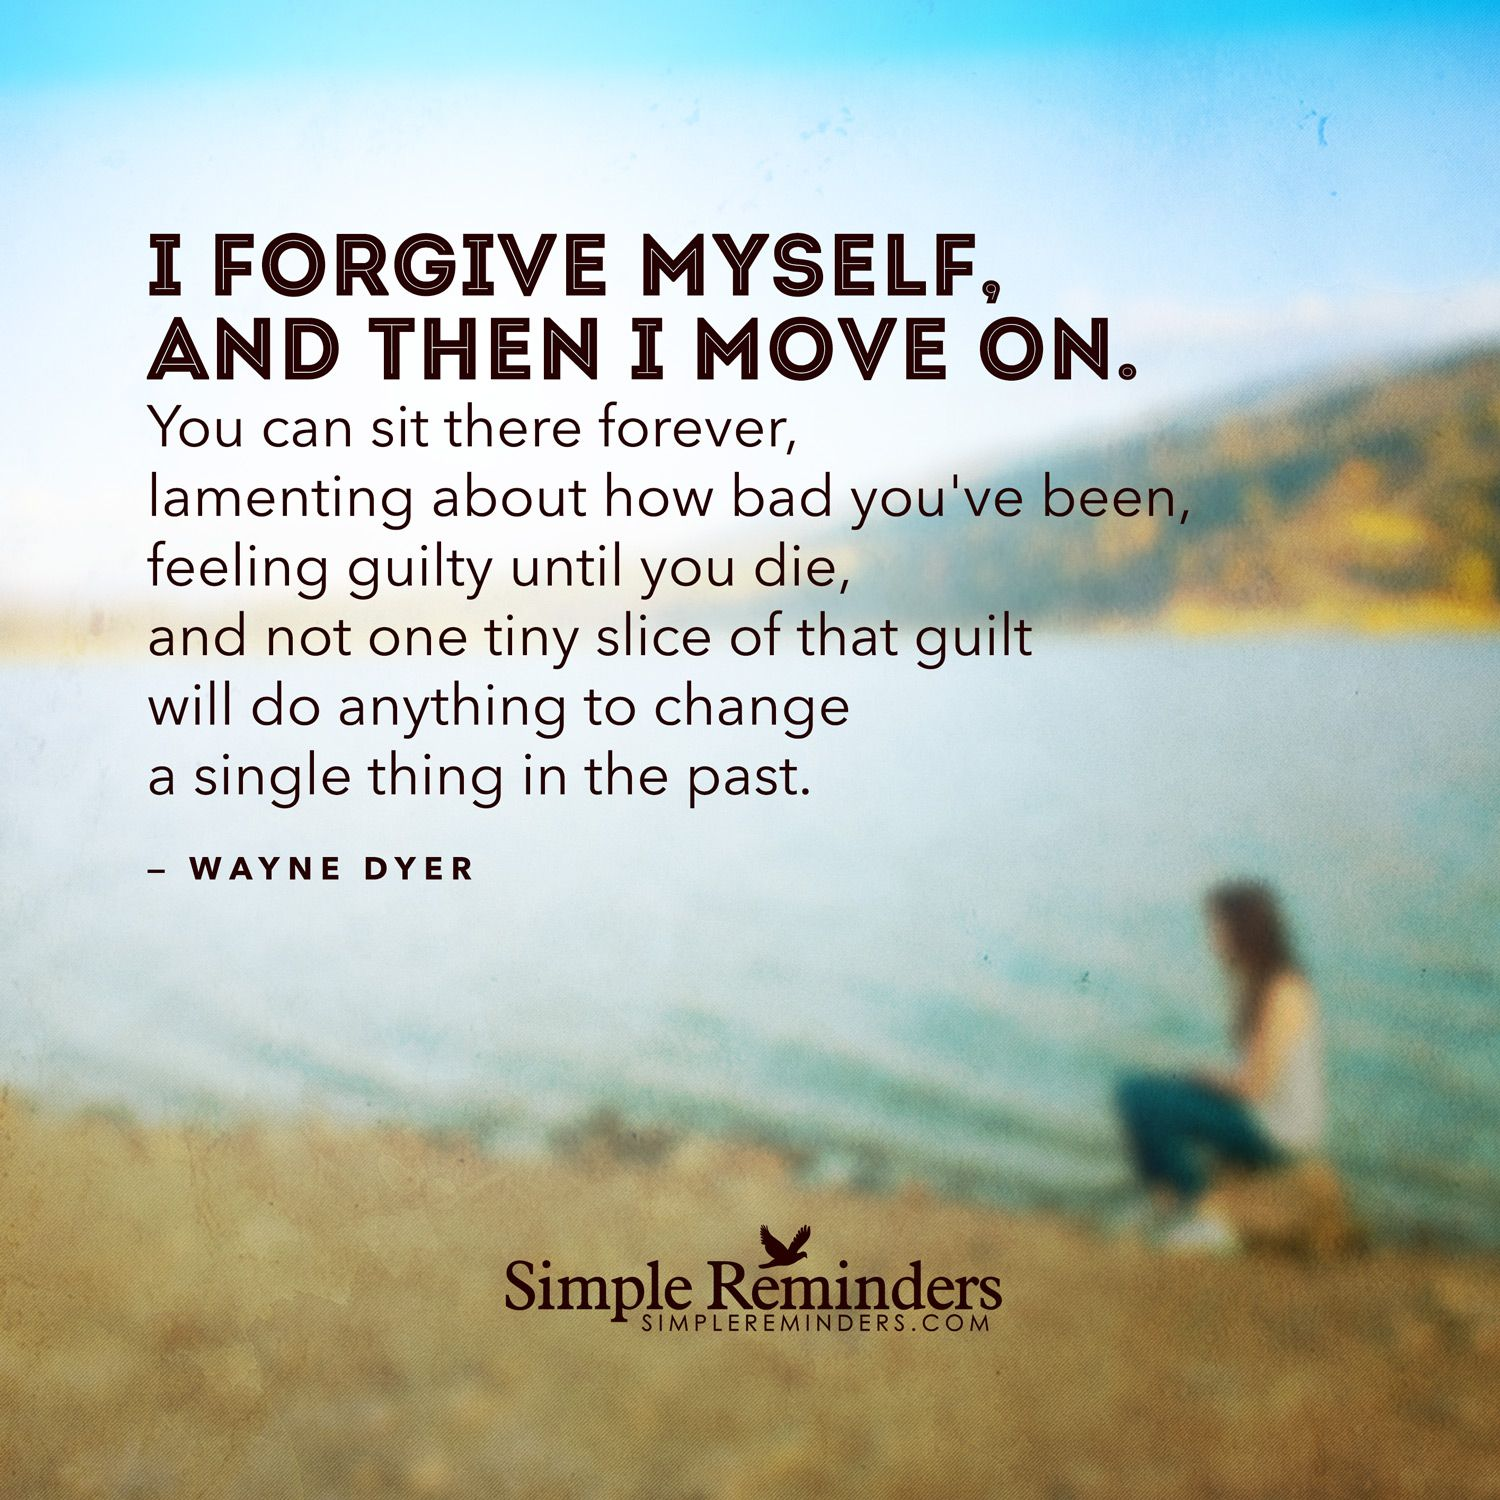 I Forgive Myself, And Then I Move On By Wayne Dyer